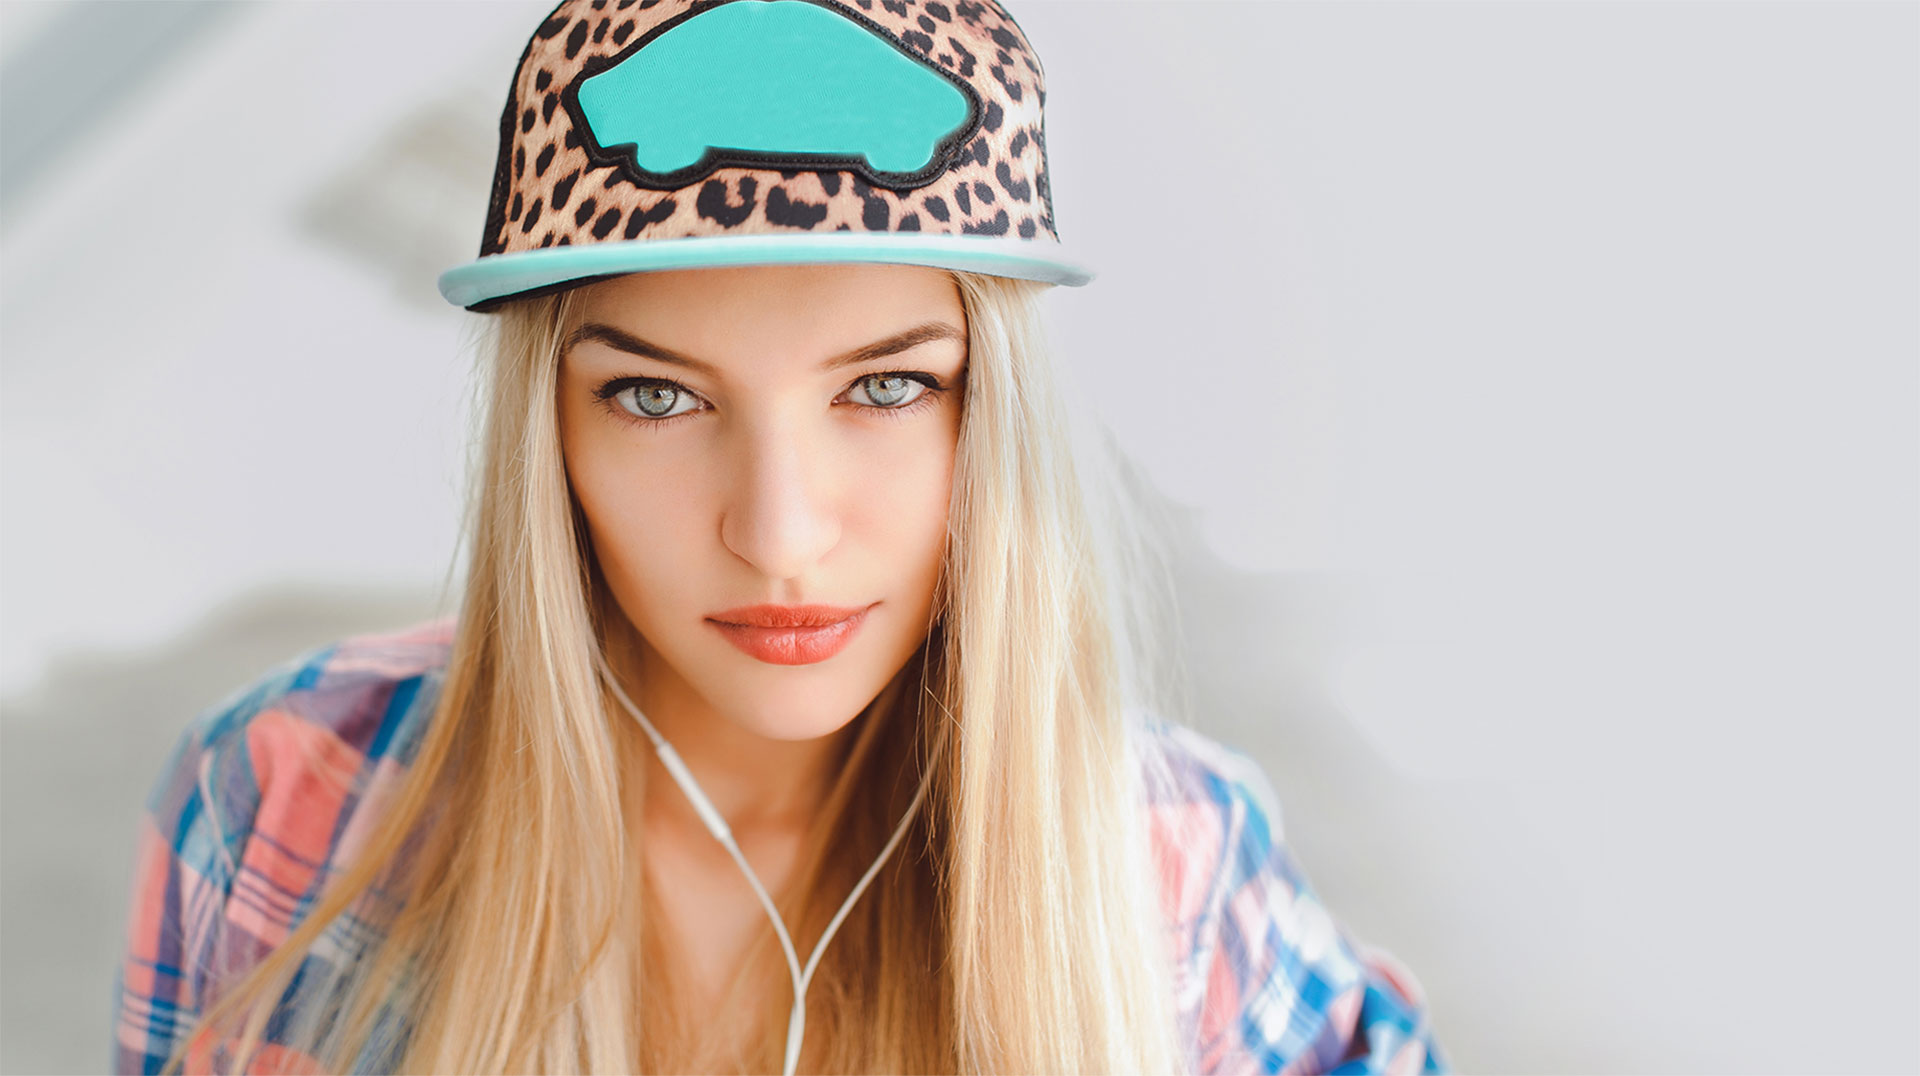 15 CHIC URBAN HATS YOU'LL WANT TO WEAR